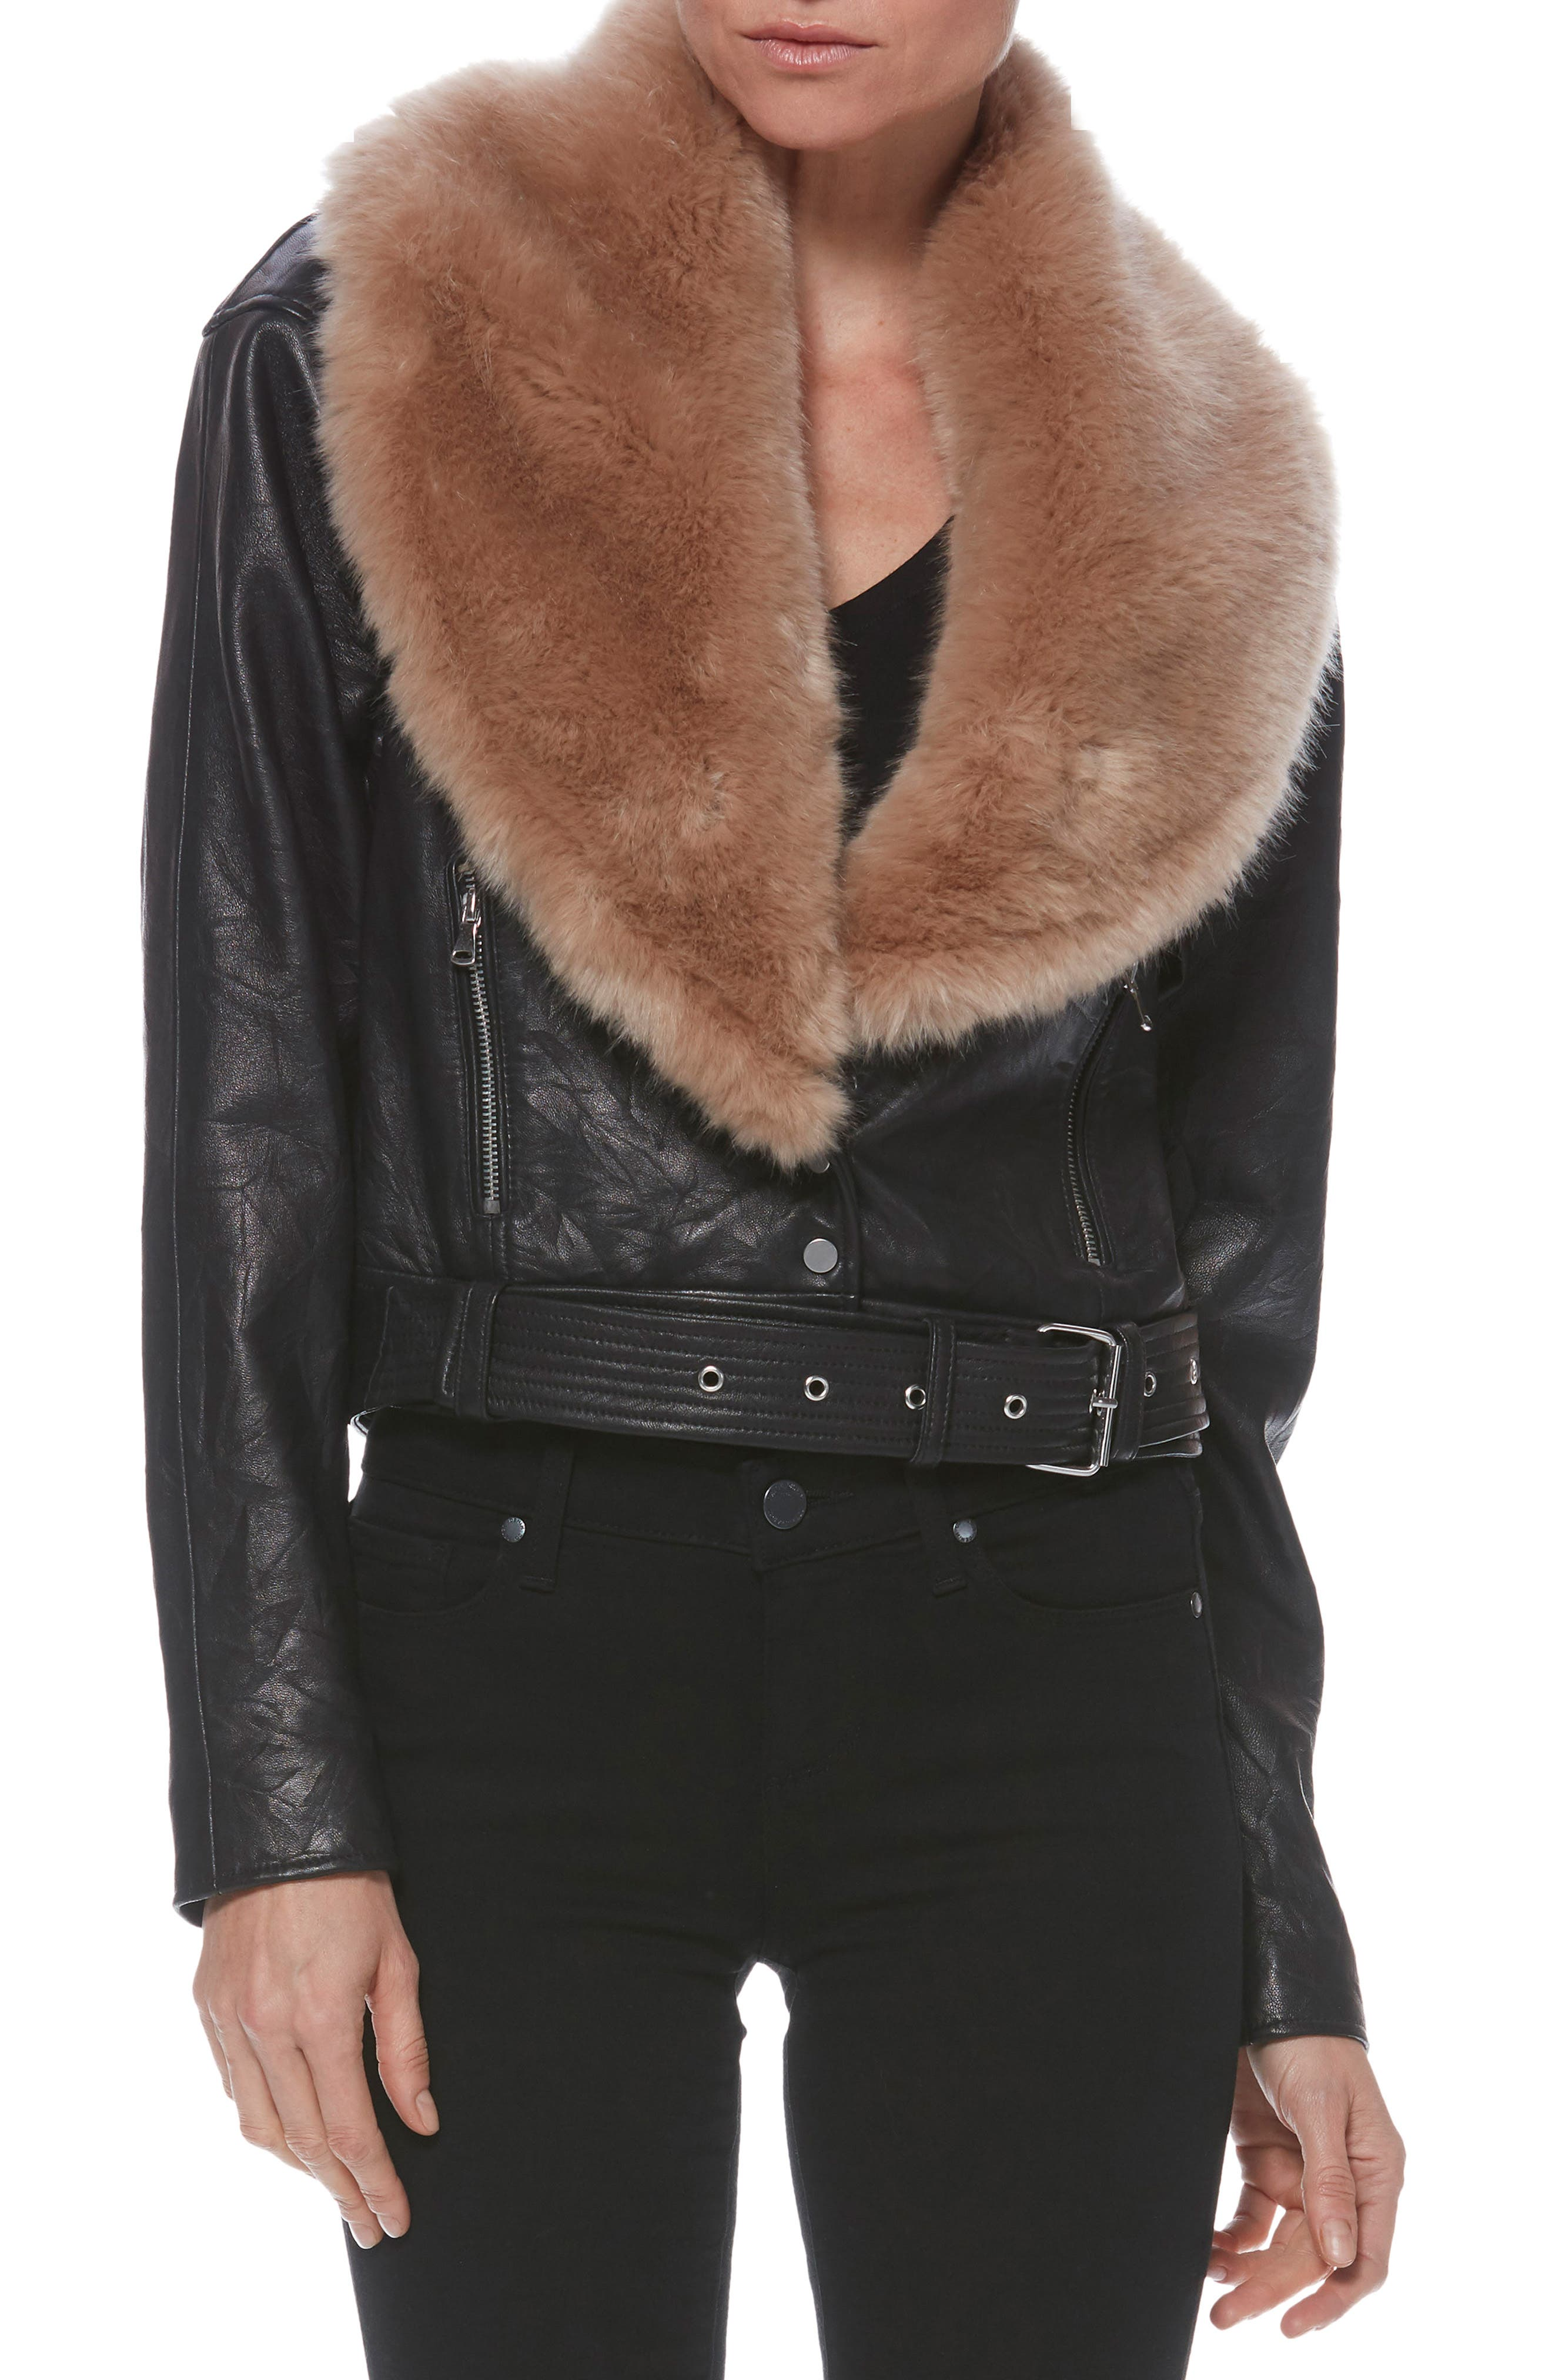 Rizza Lambskin Leather Moto Jacket with Removable Faux Fur Collar,                             Main thumbnail 1, color,                             BLACK